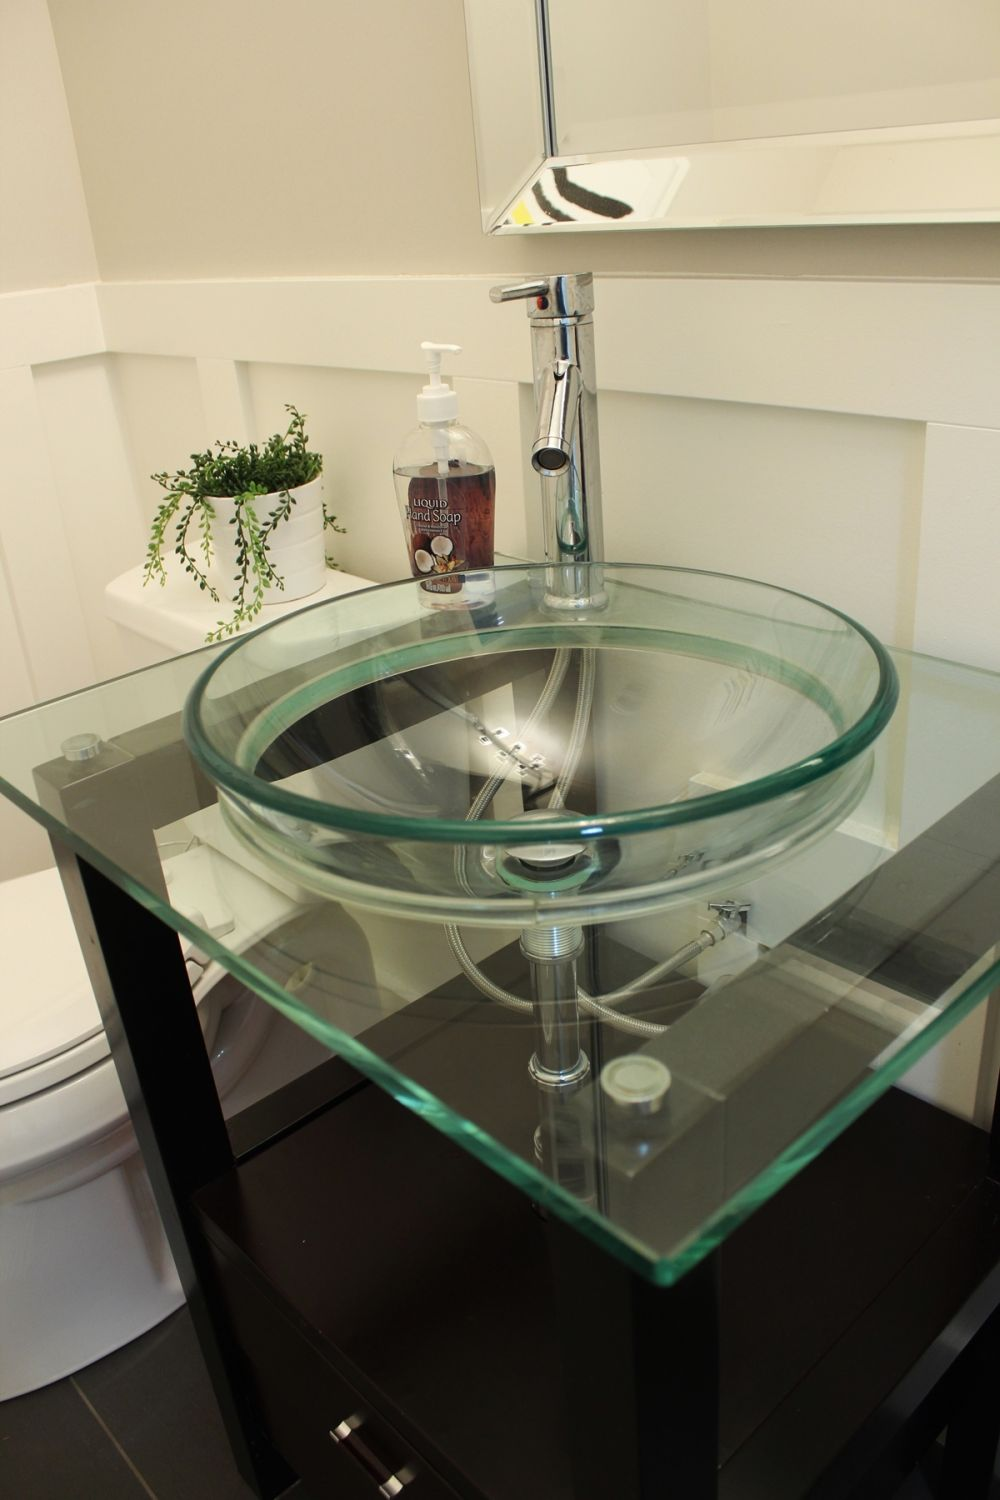 clear glass bathroom sinks how to decorate a bathroom without clutter 17777